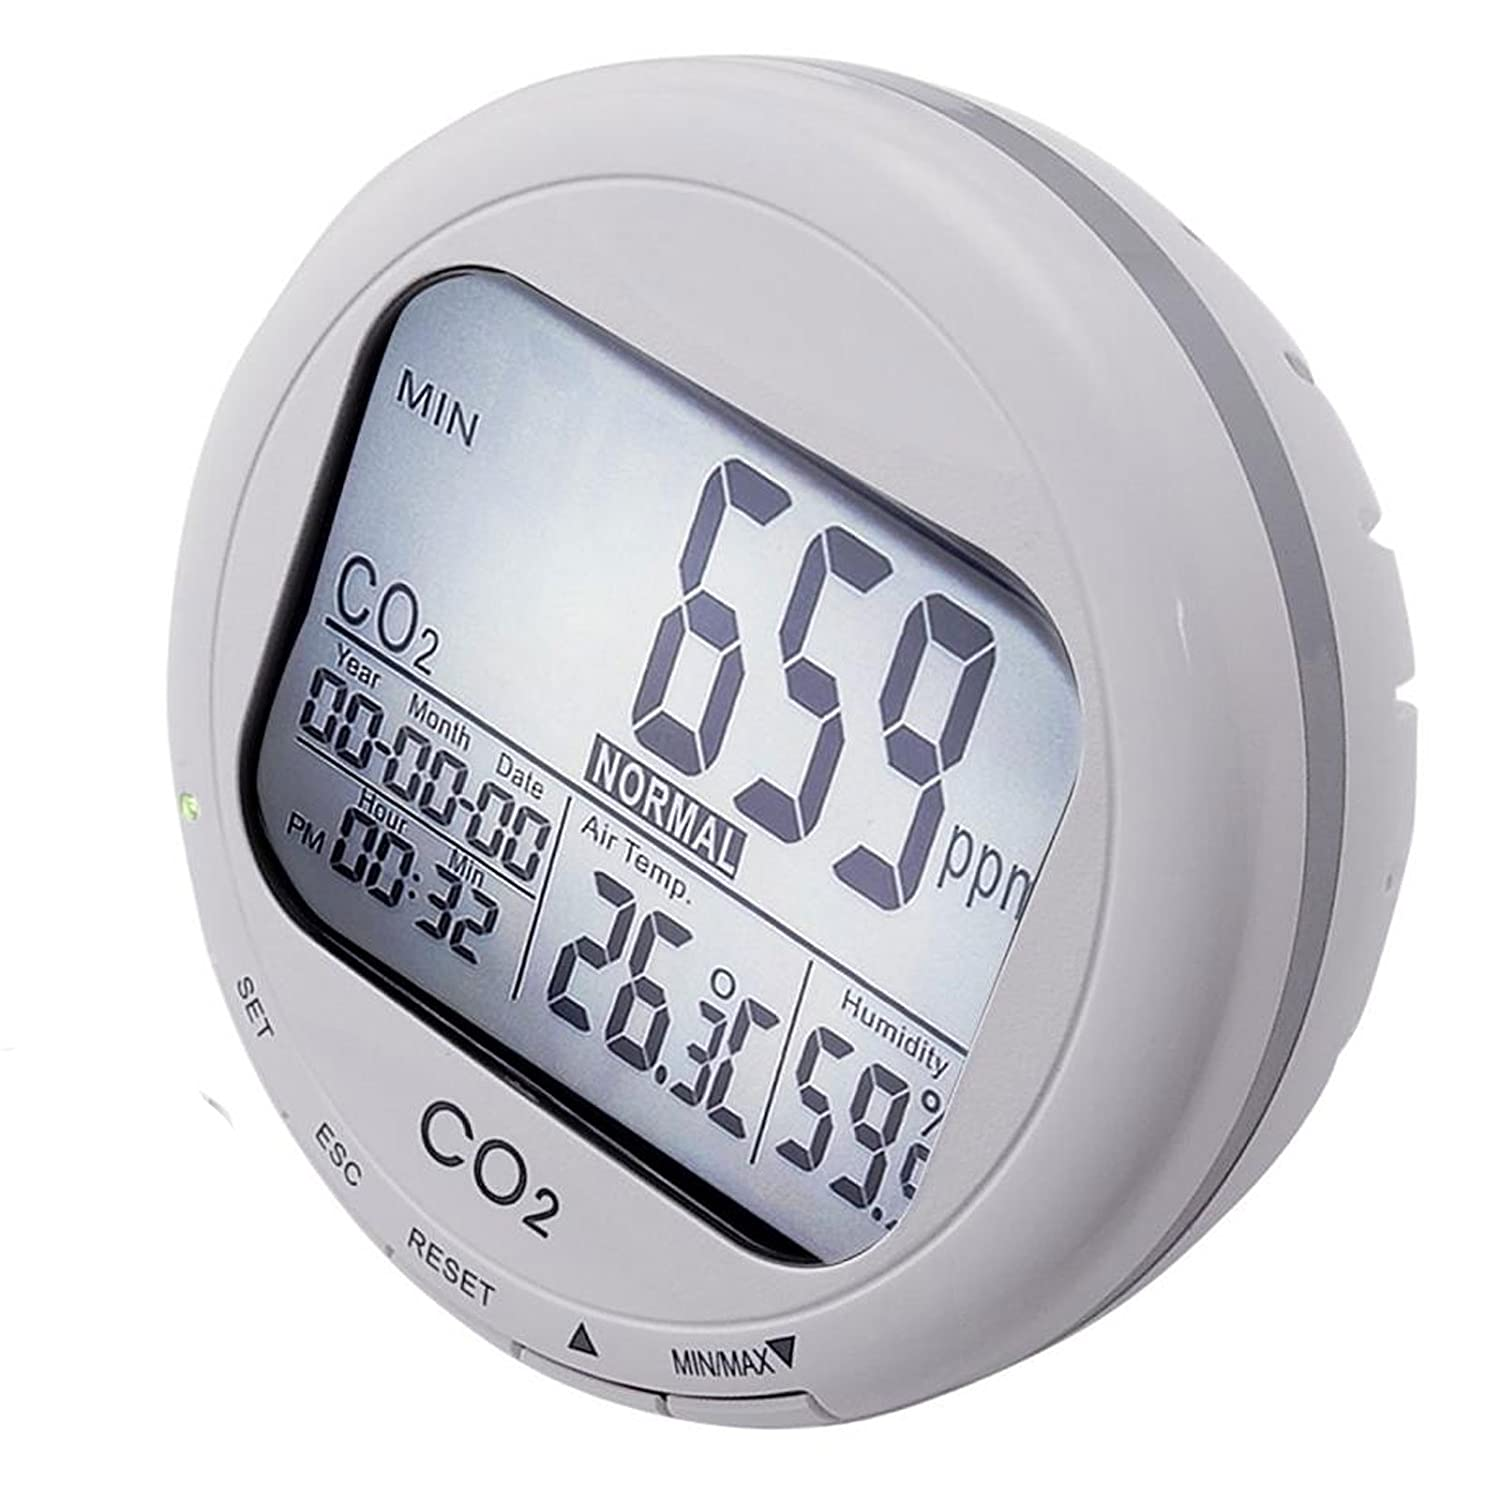 Desktop CO2/RH/Temp 3 in 1 Monitor with Data Logger Logging, Indoor Air Quality 9999 ppm Carbon Dioxide/Temperature Deg C/F /Humidity Meter, Adjustable Audible Alarm Gain Express Holdings Ltd CO98